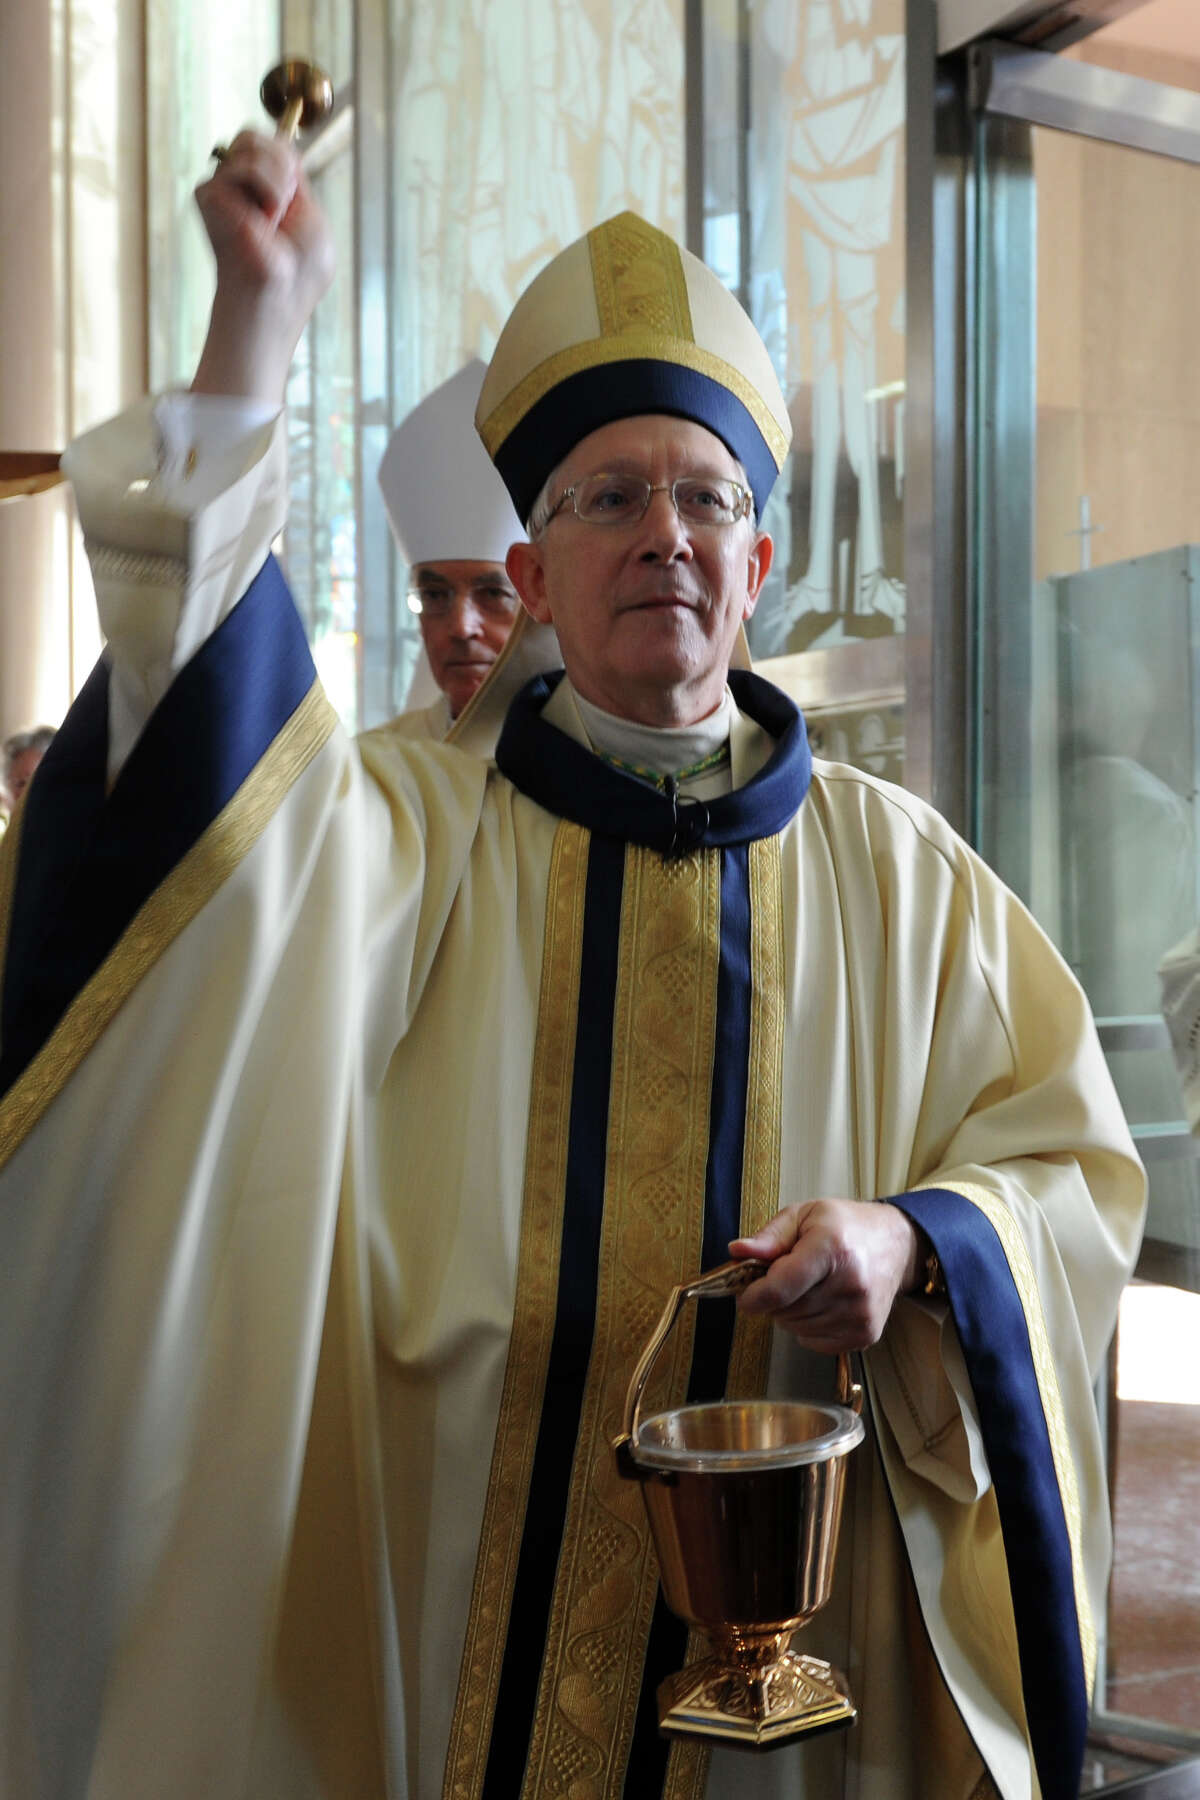 Archbishop Leonard P. Blair enters the Cathedral of Saint Joseph for his Mass of Installation in Hartford, Conn., Dec. 16, 2013.